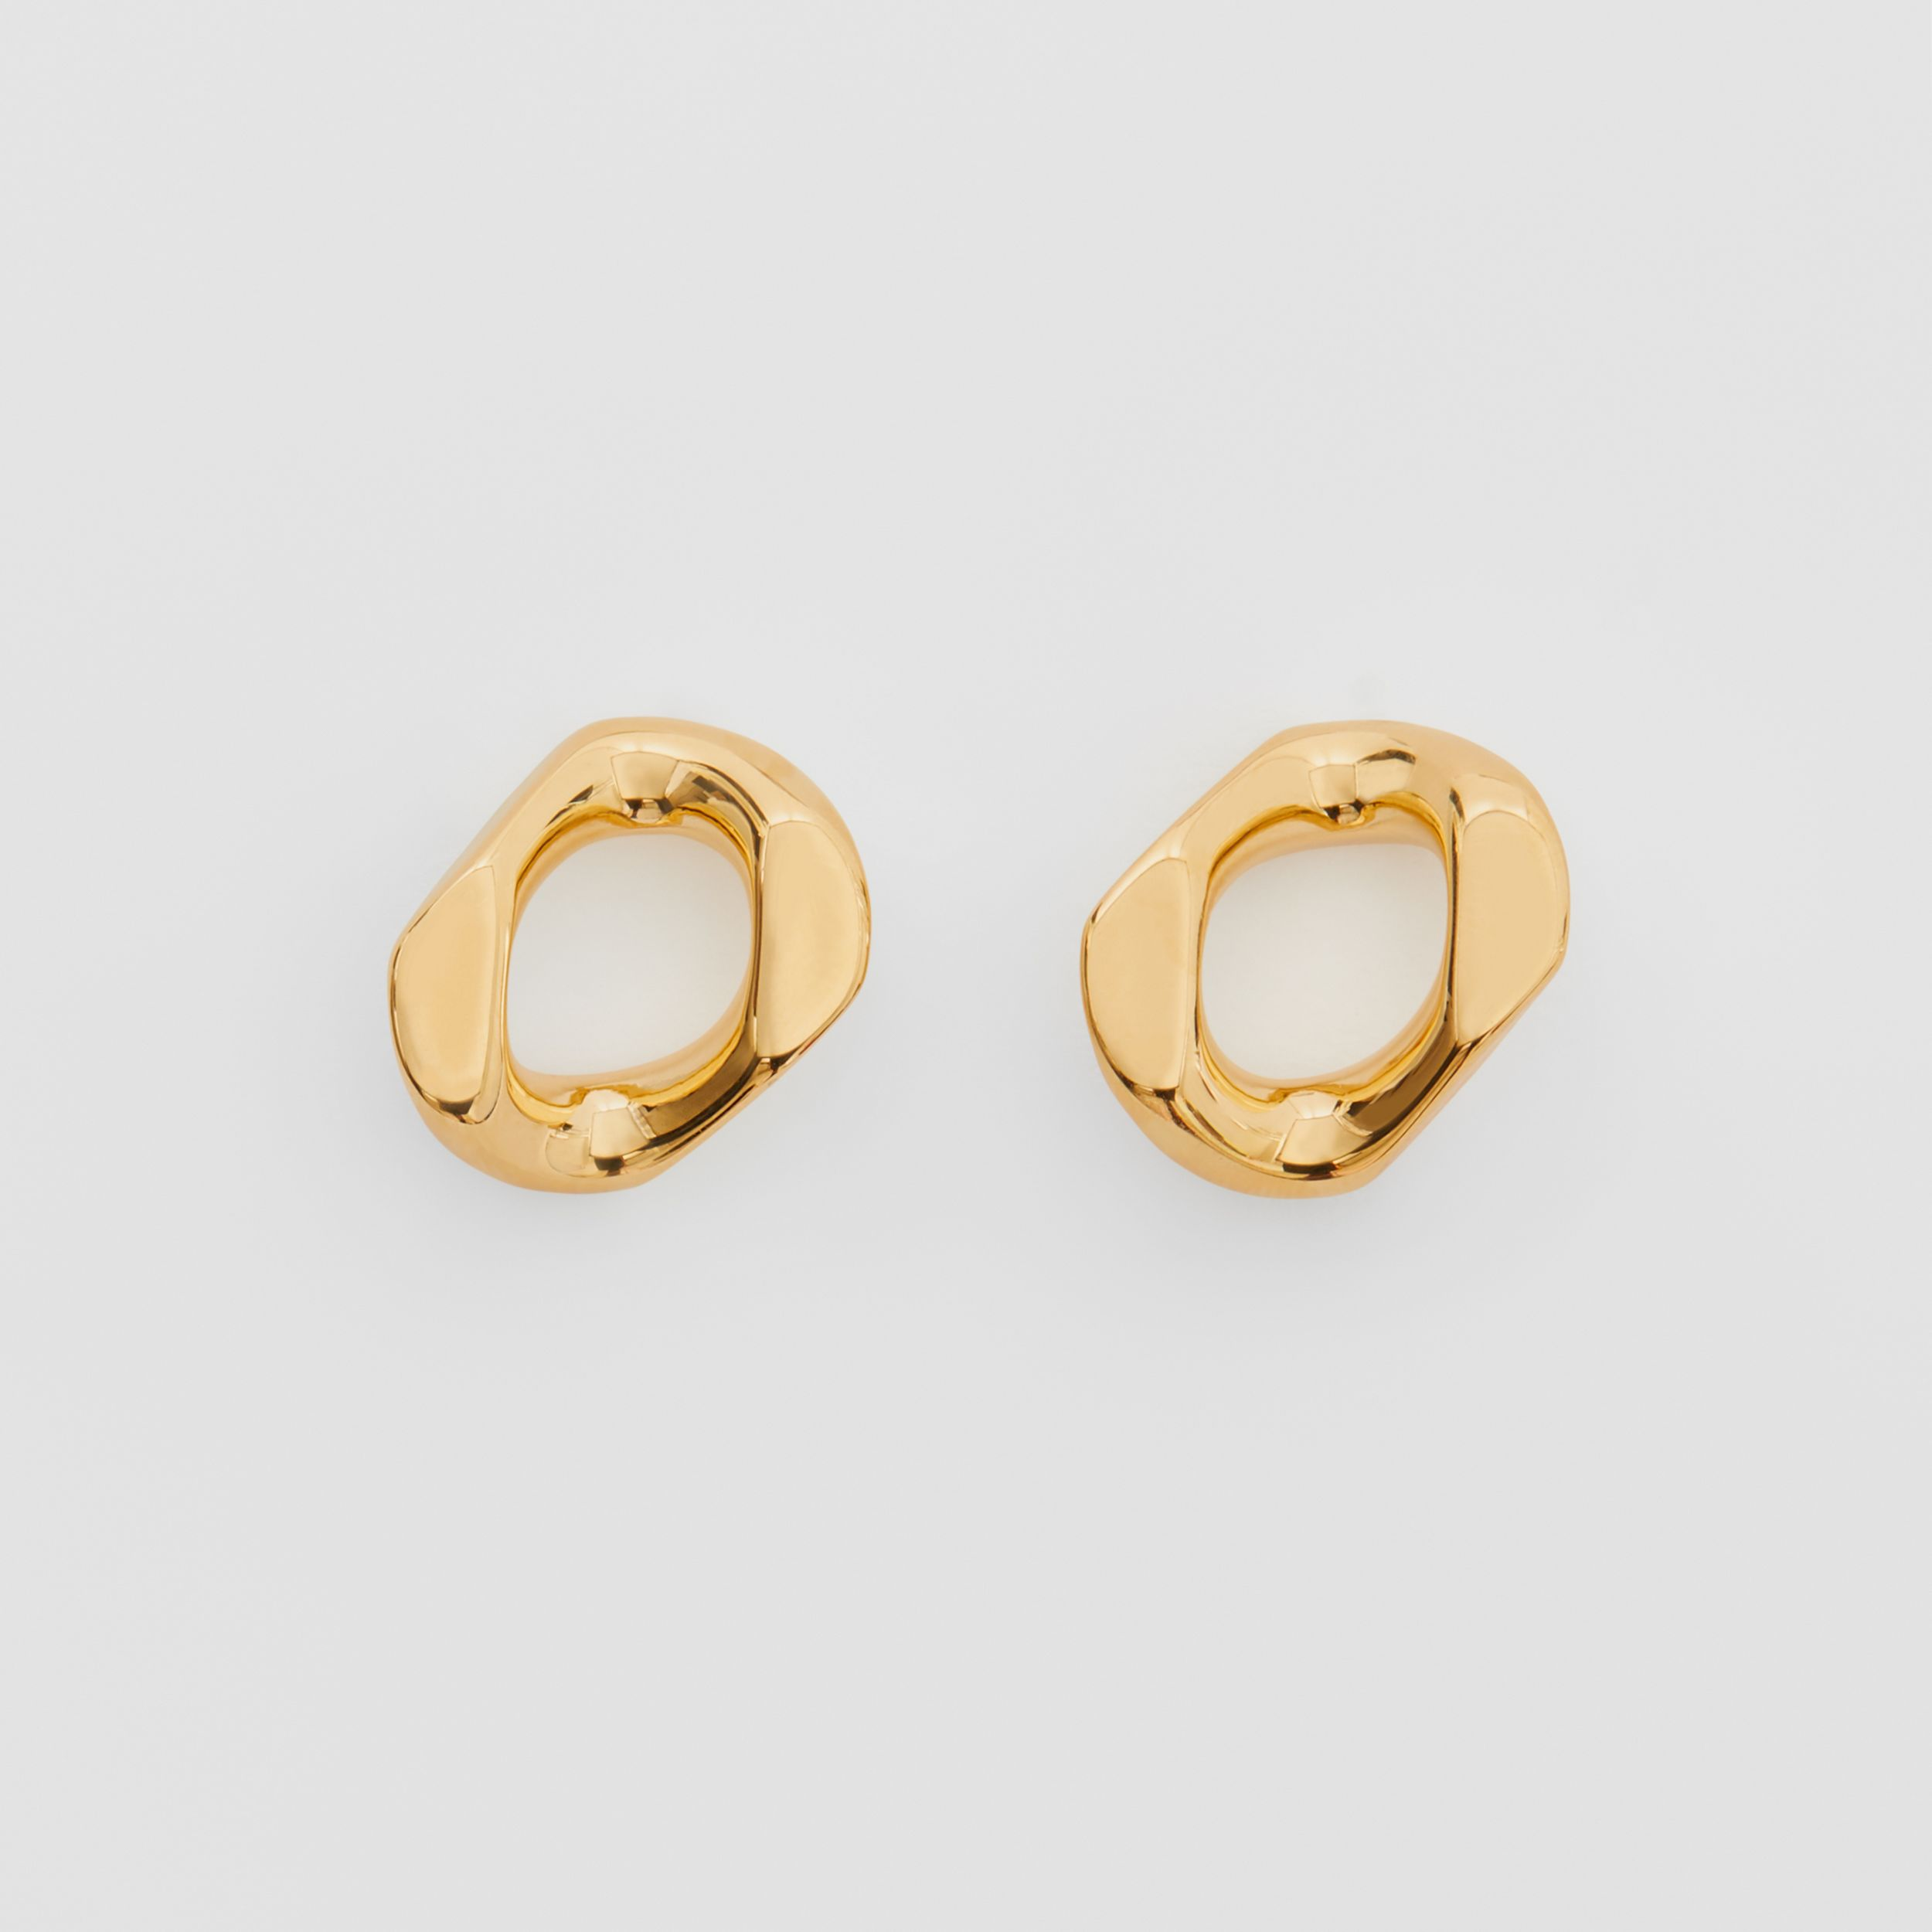 Small Gold-plated Chain-link Earrings in Light - Women | Burberry - 1